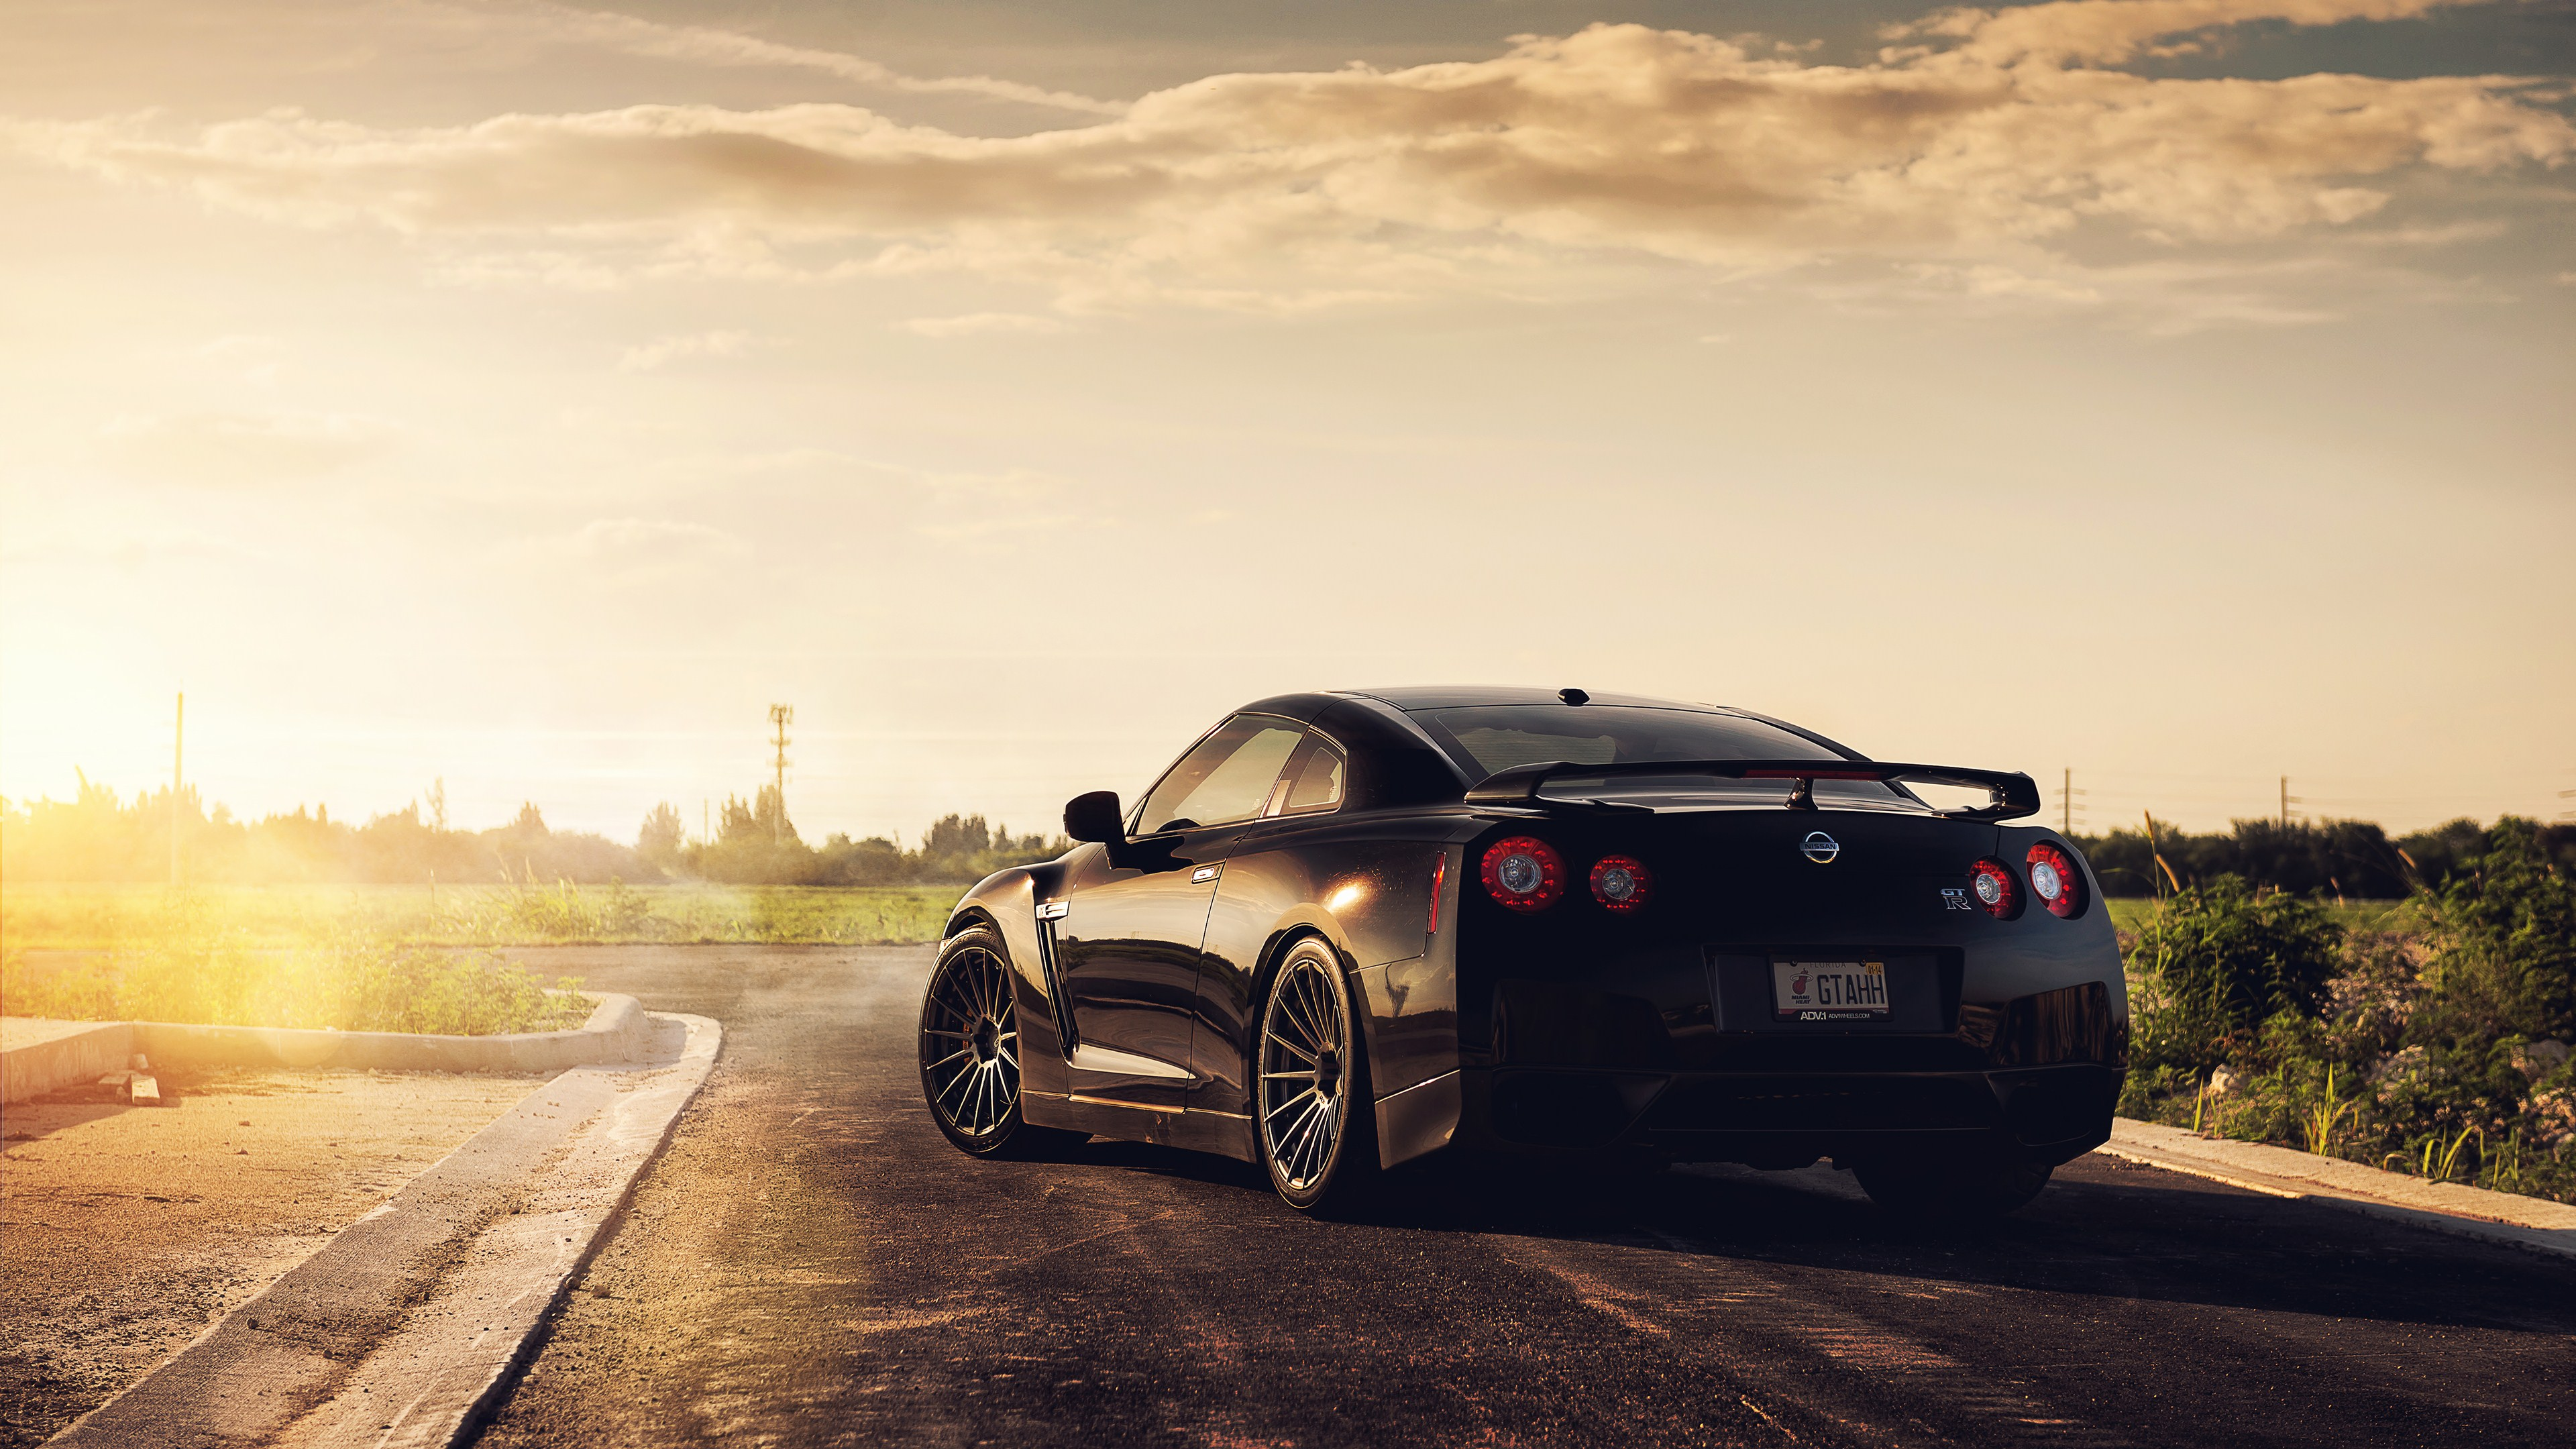 Top 5 Best 4K Ultra HD Super Cars Wallpapers for Windows ...